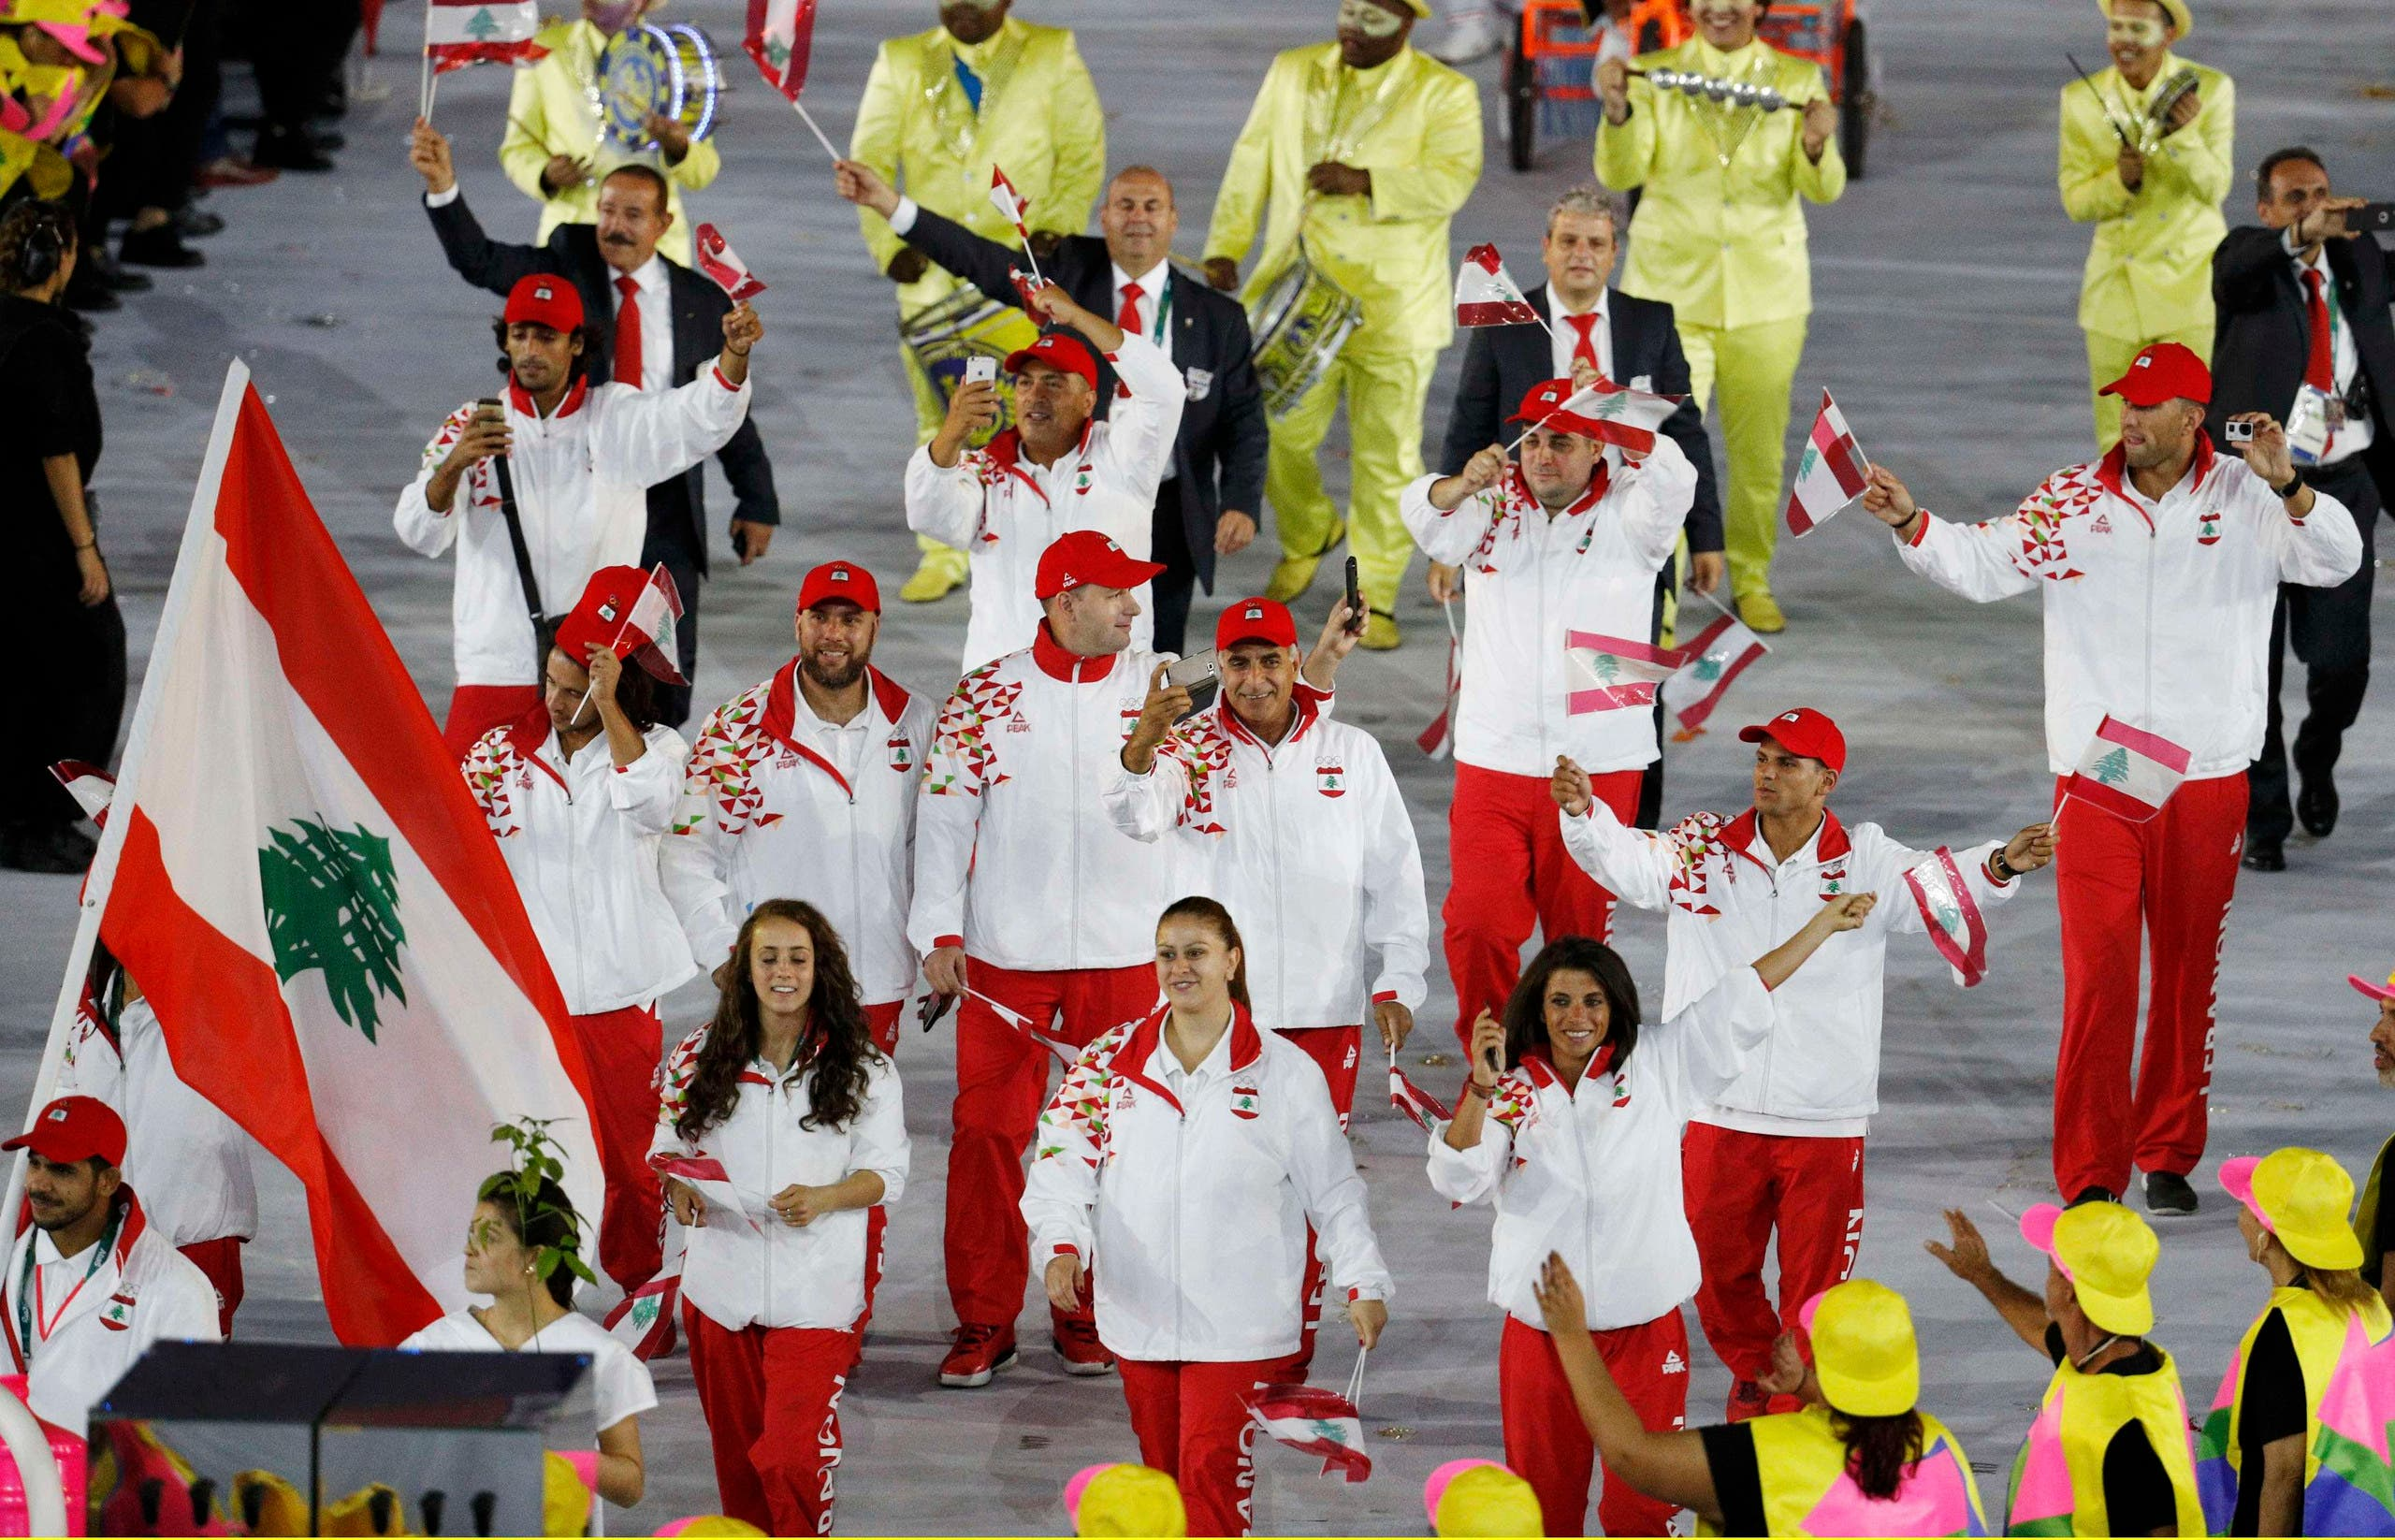 Flagbearer Nacif Elias (LIB) of Lebanon leads his contingent during the opening ceremony. REUTERS